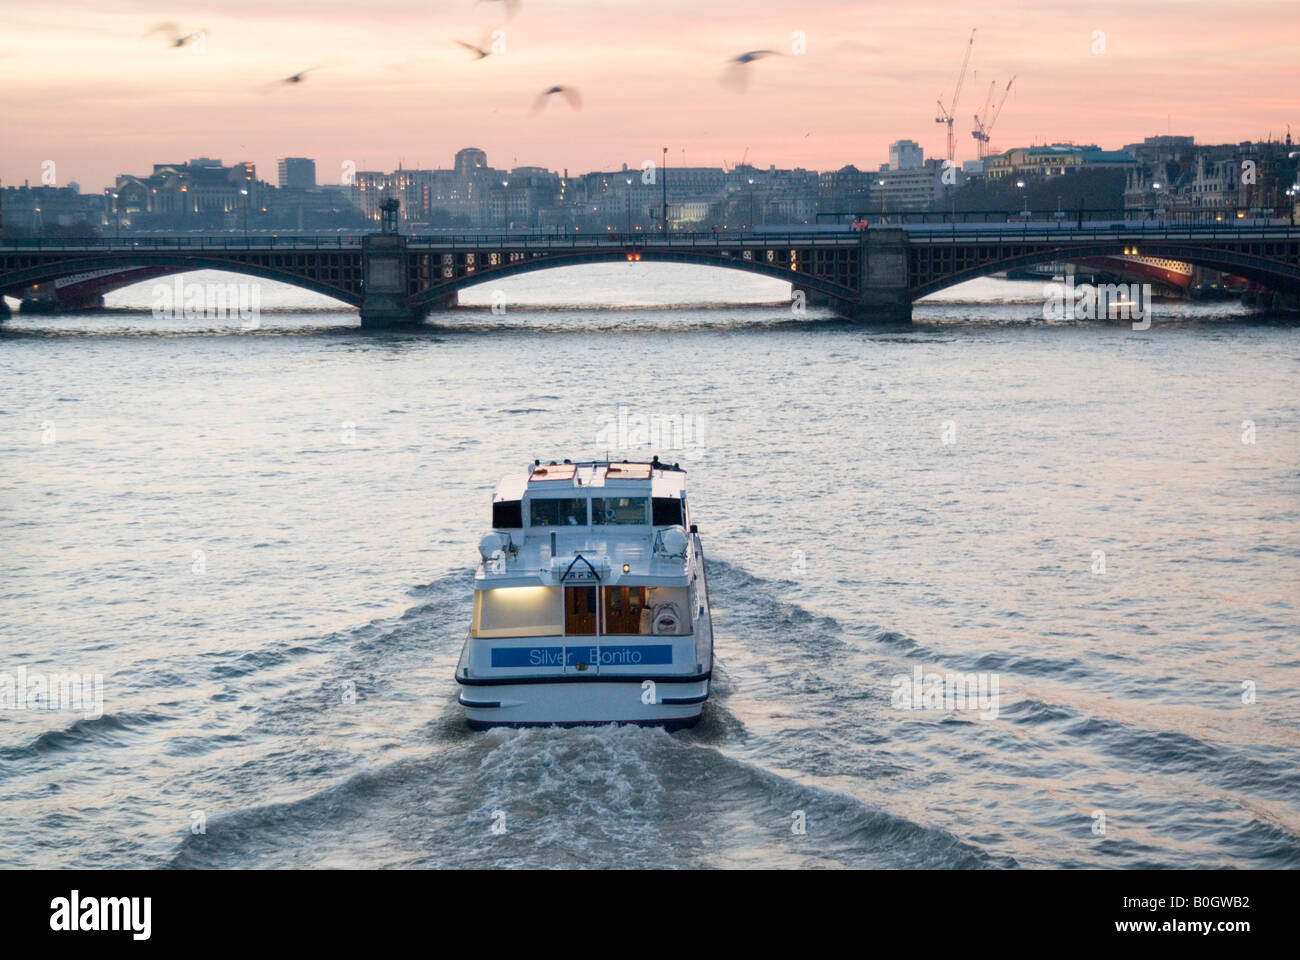 Tour boat on the river Thames at dusk, London, England, UK - Stock Image